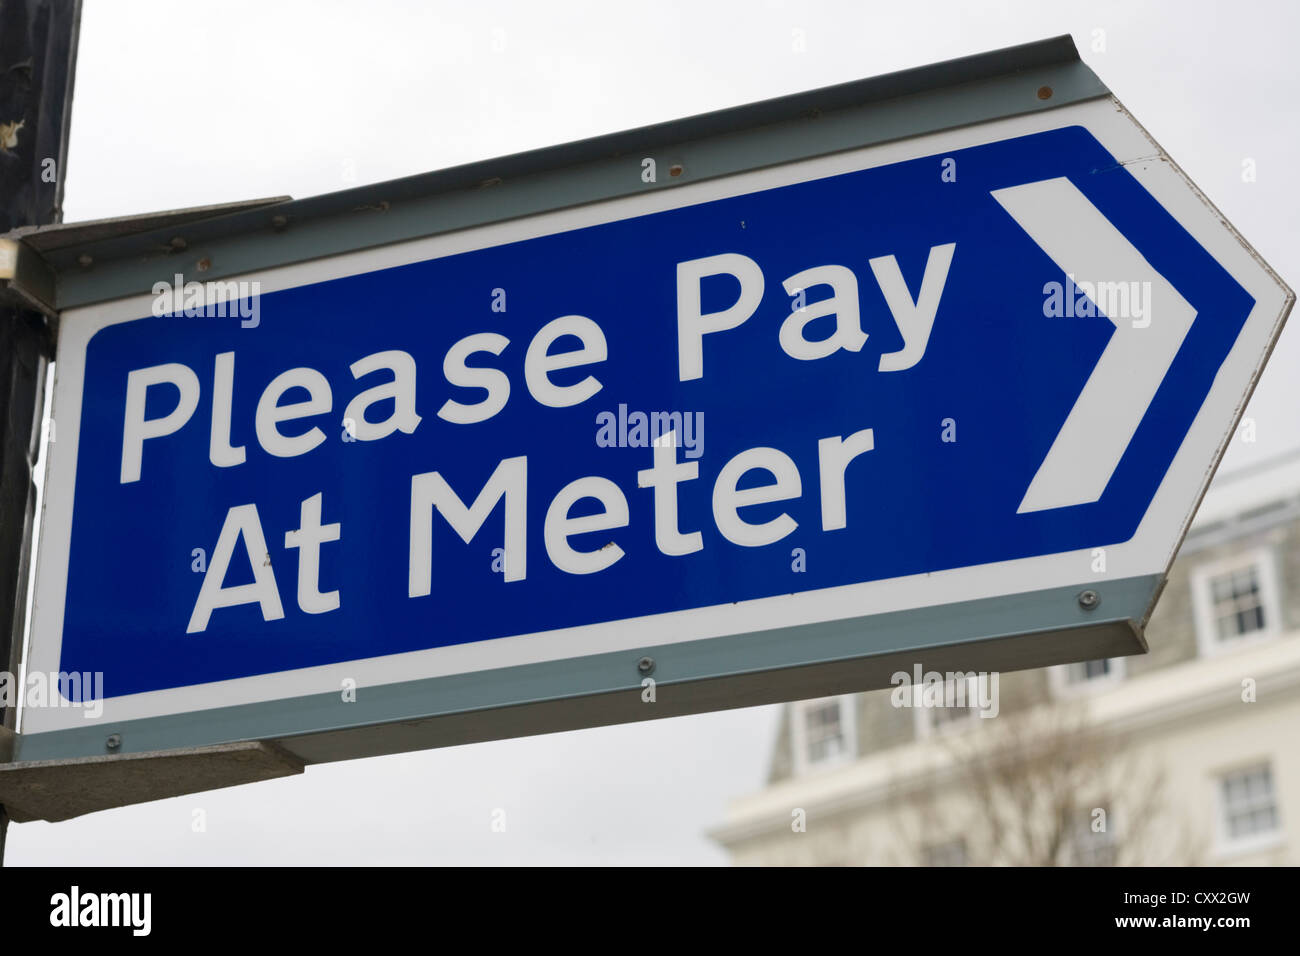 Please Pay At Meter sign in a car park, Pay here, UK - Stock Image